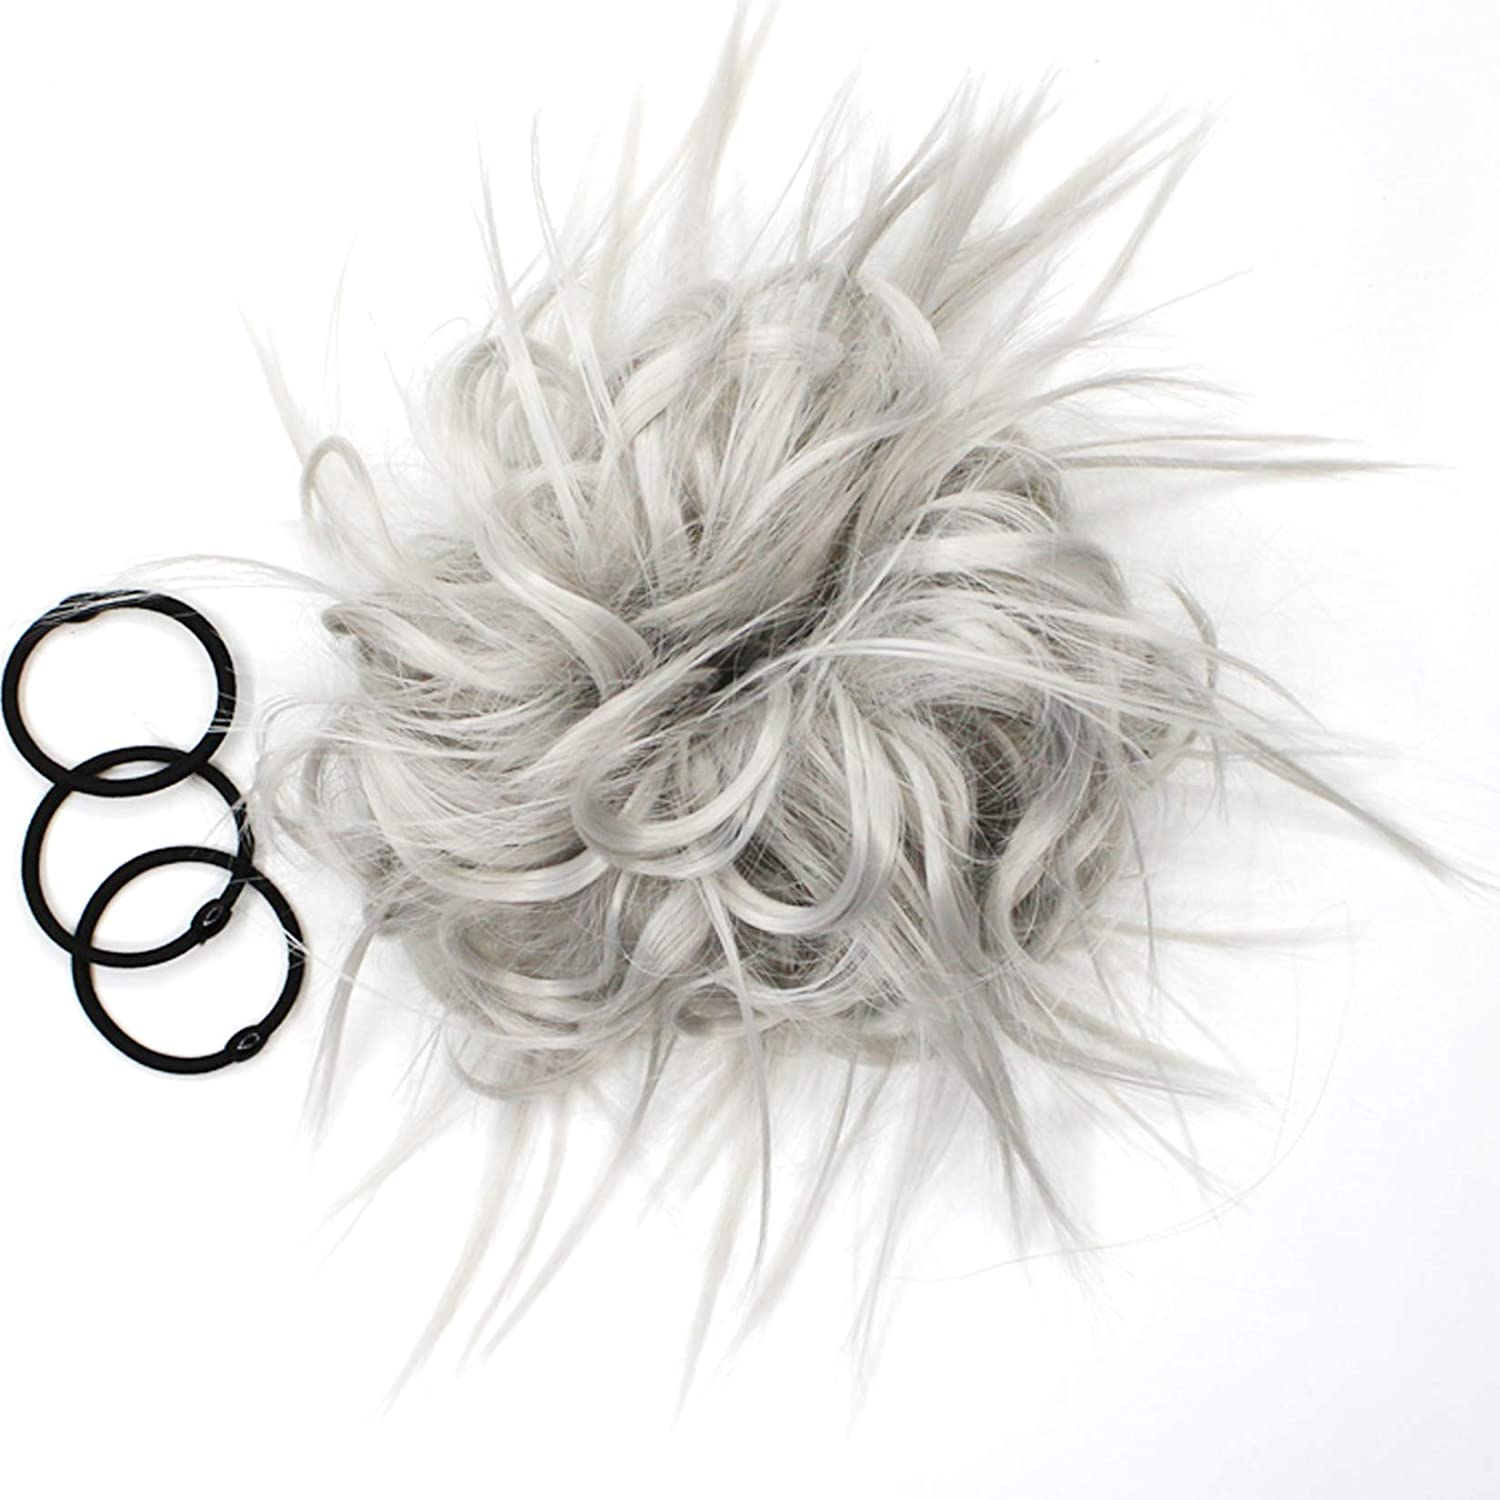 Messy Bun Hair Piece Tousled W Extension Curly Max 75% OFF Ponytail Popular brand